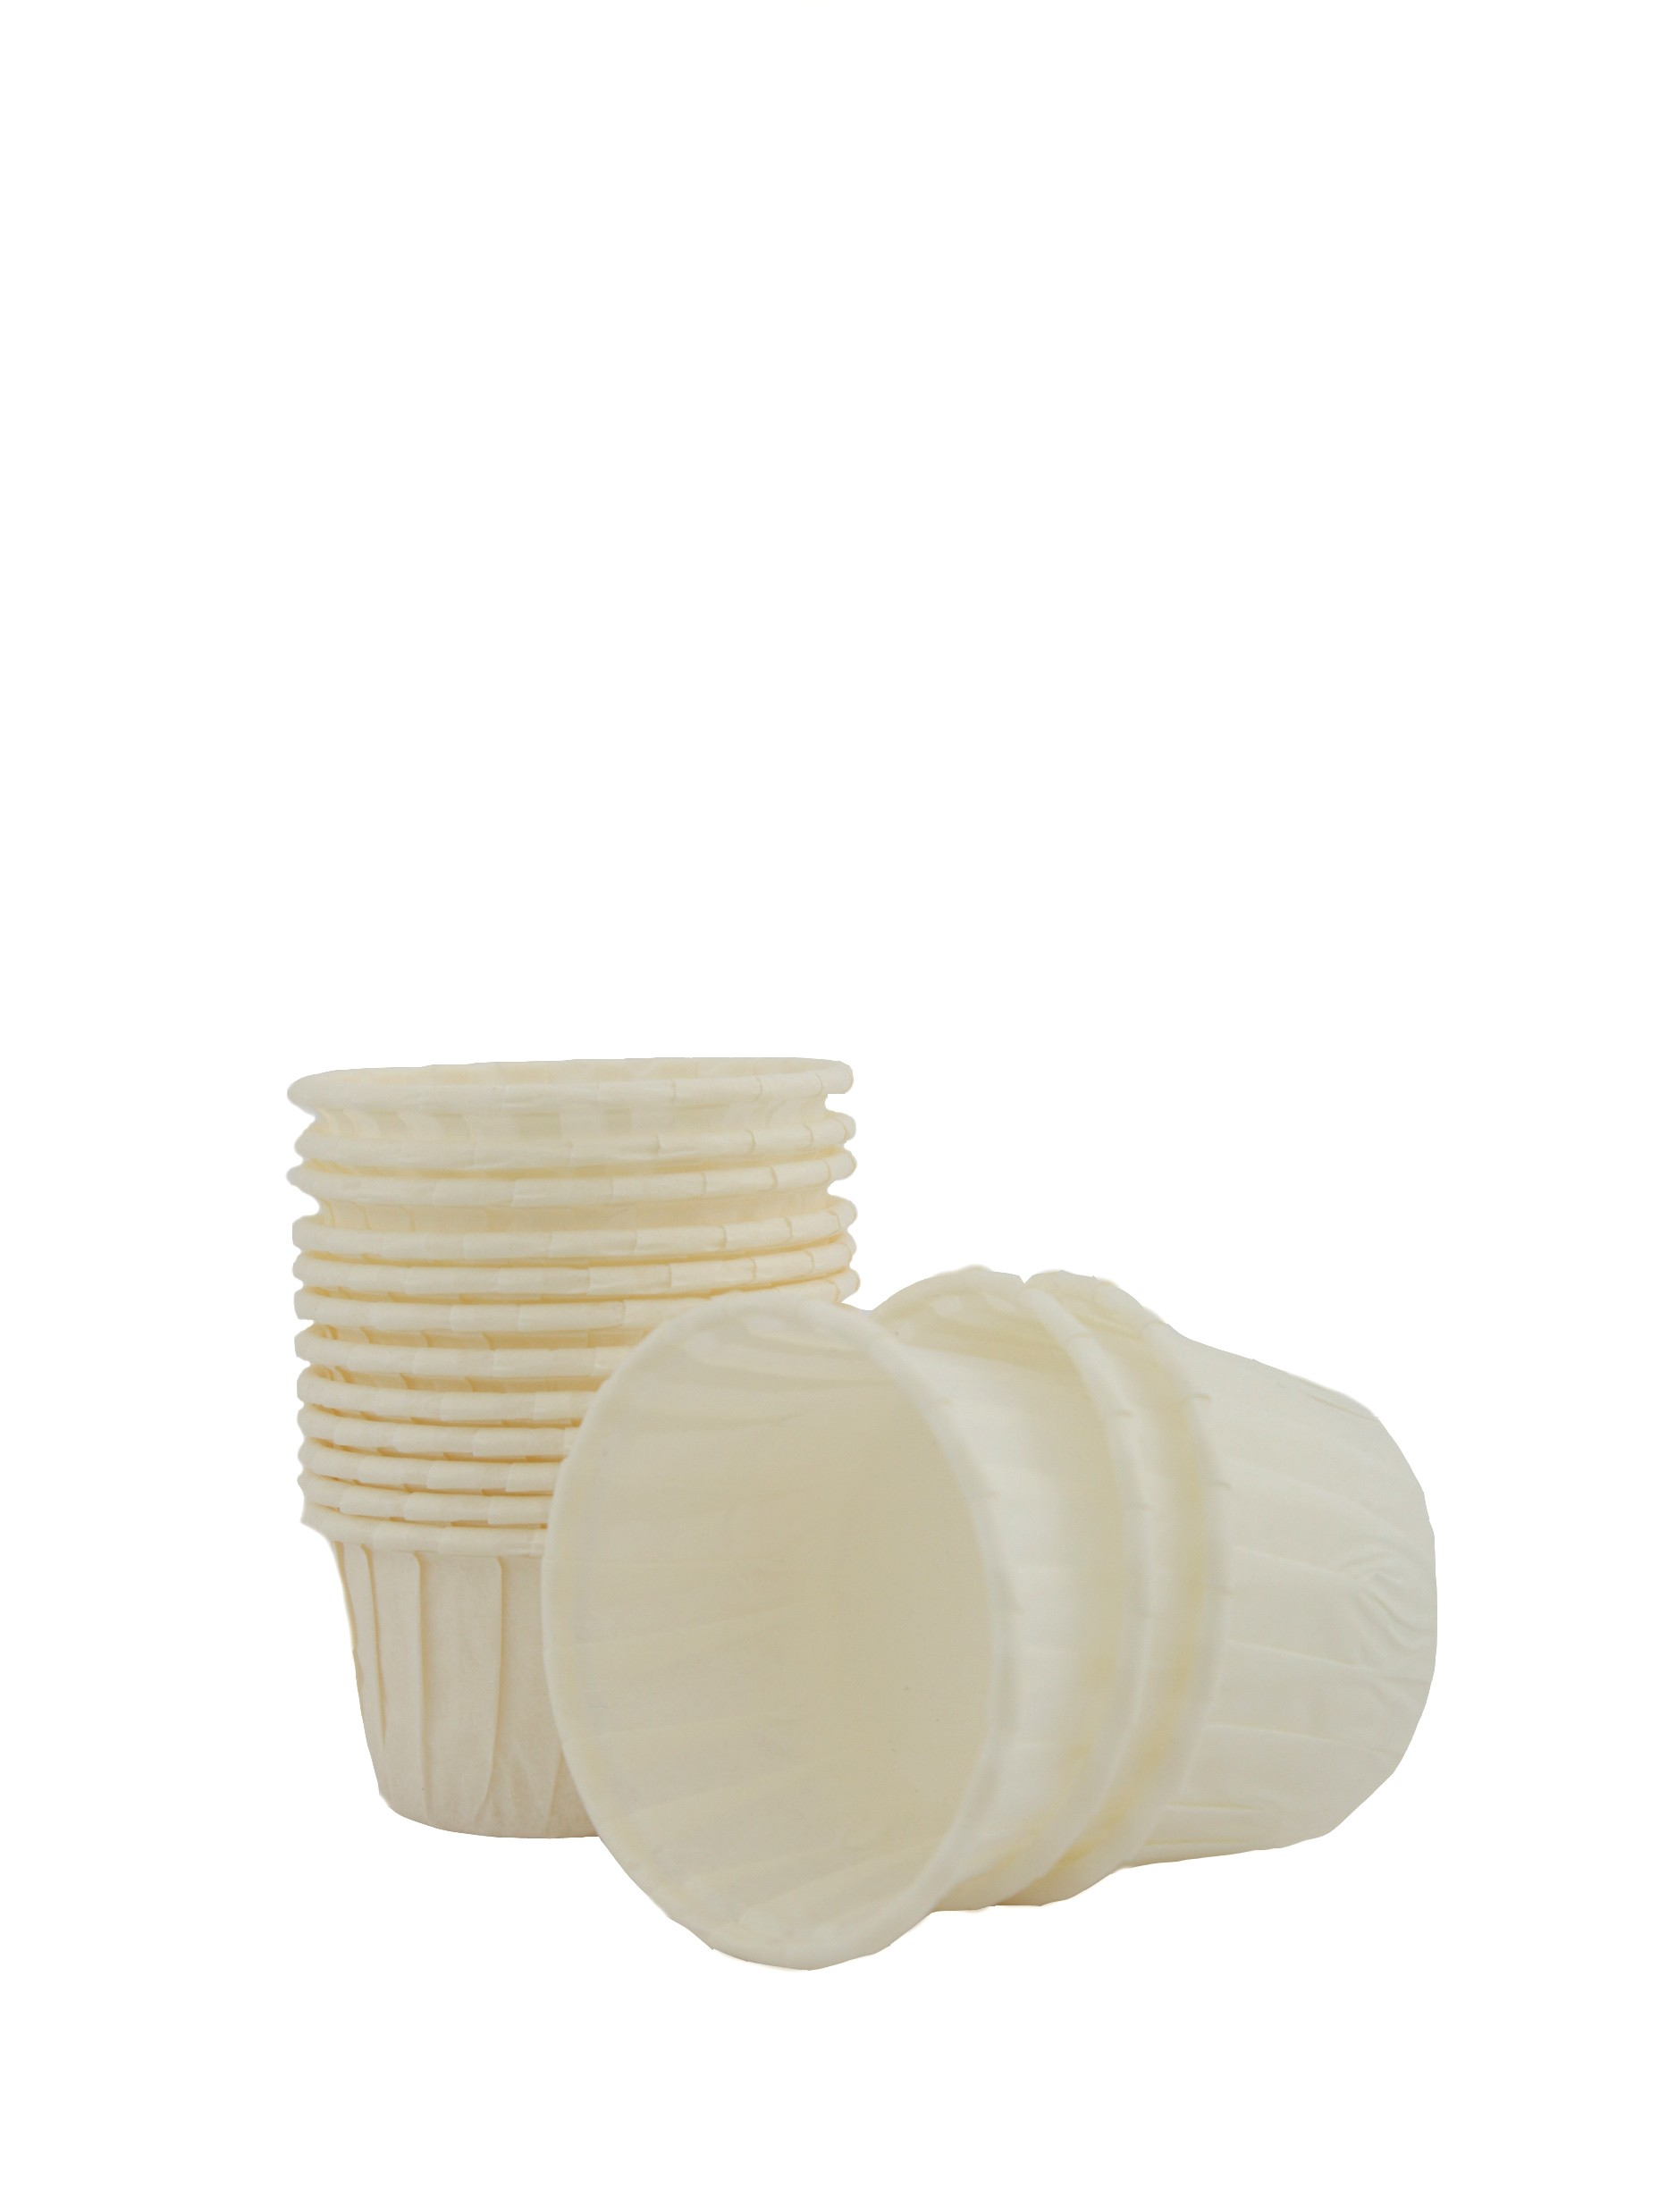 Caissettes Blanches standard x100